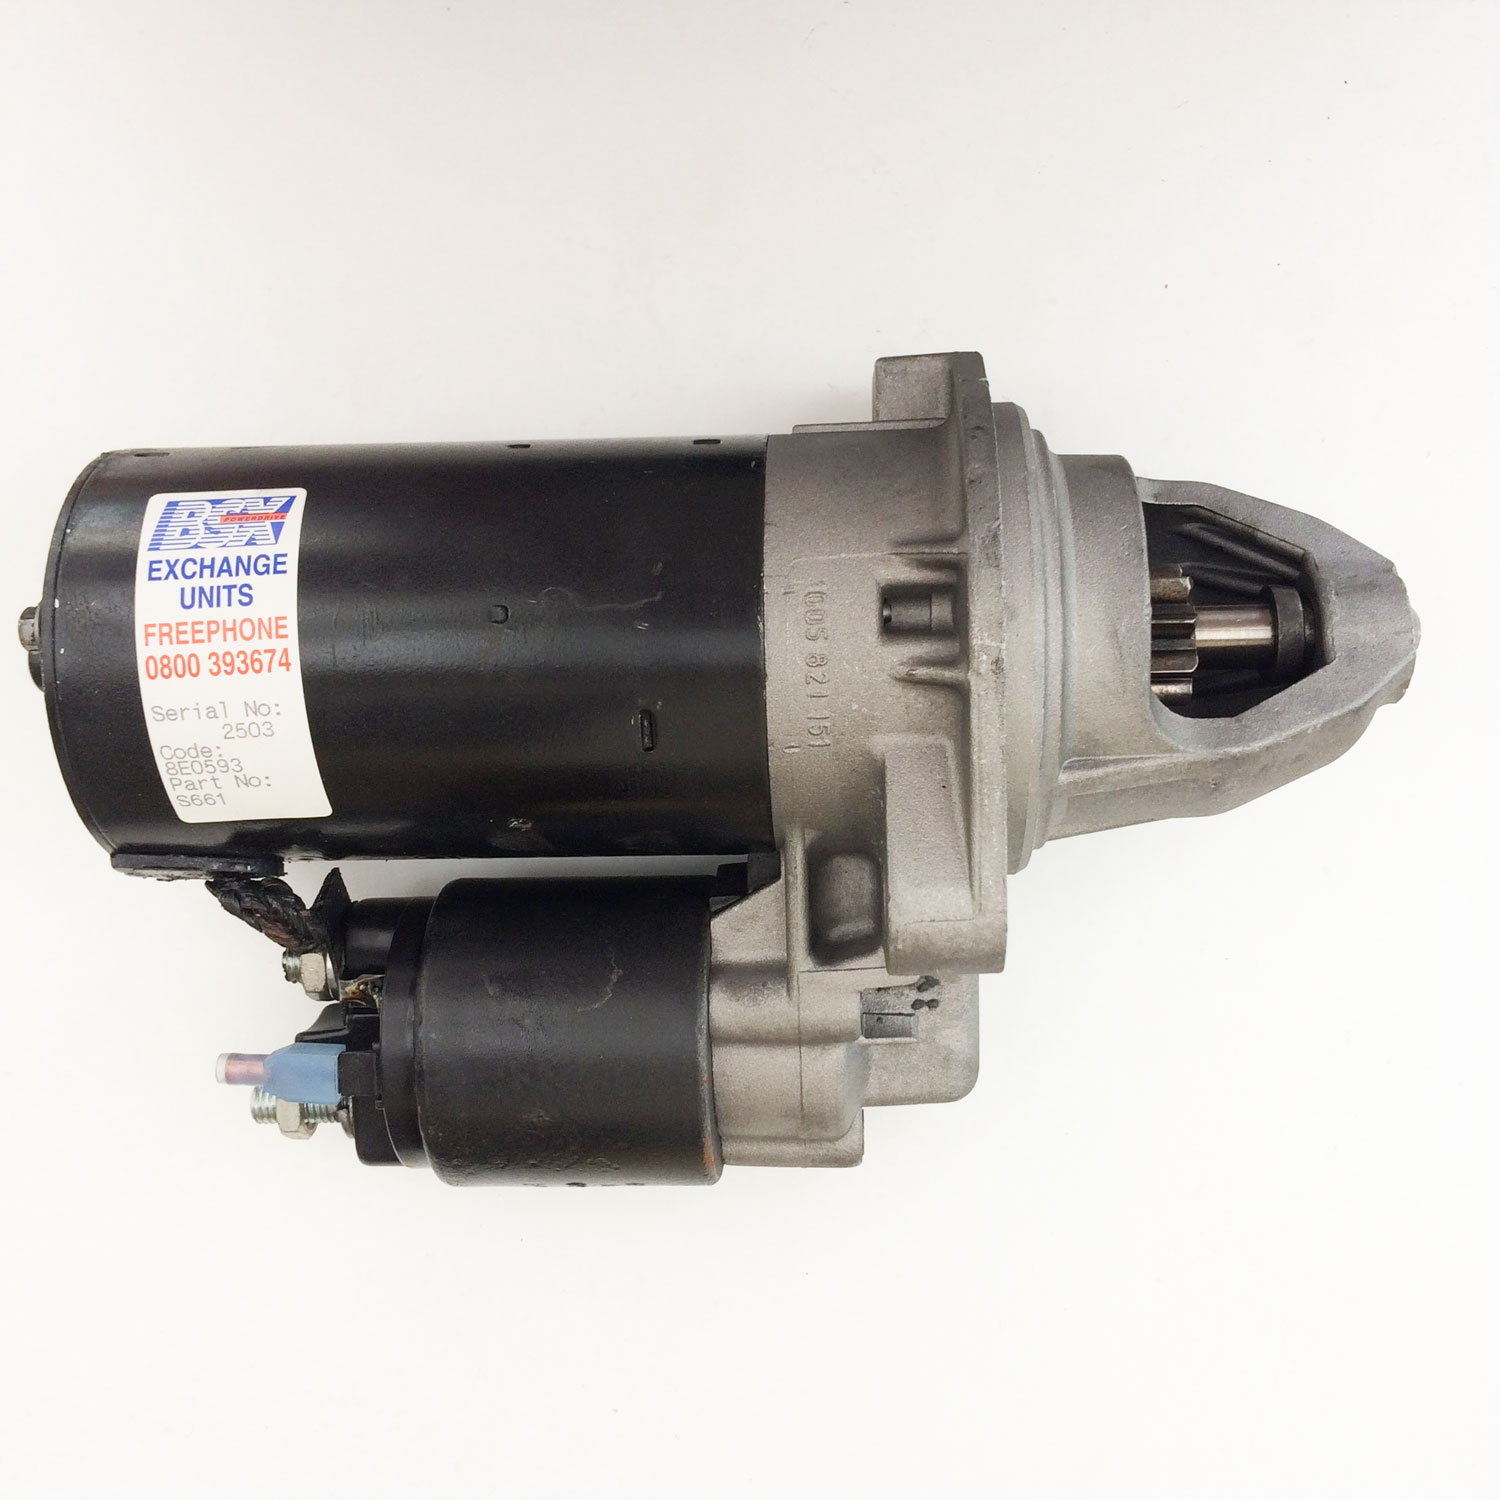 Starter Motor for Volvo 240, 360, 740, 760, 780, 940 - Mollies Classics